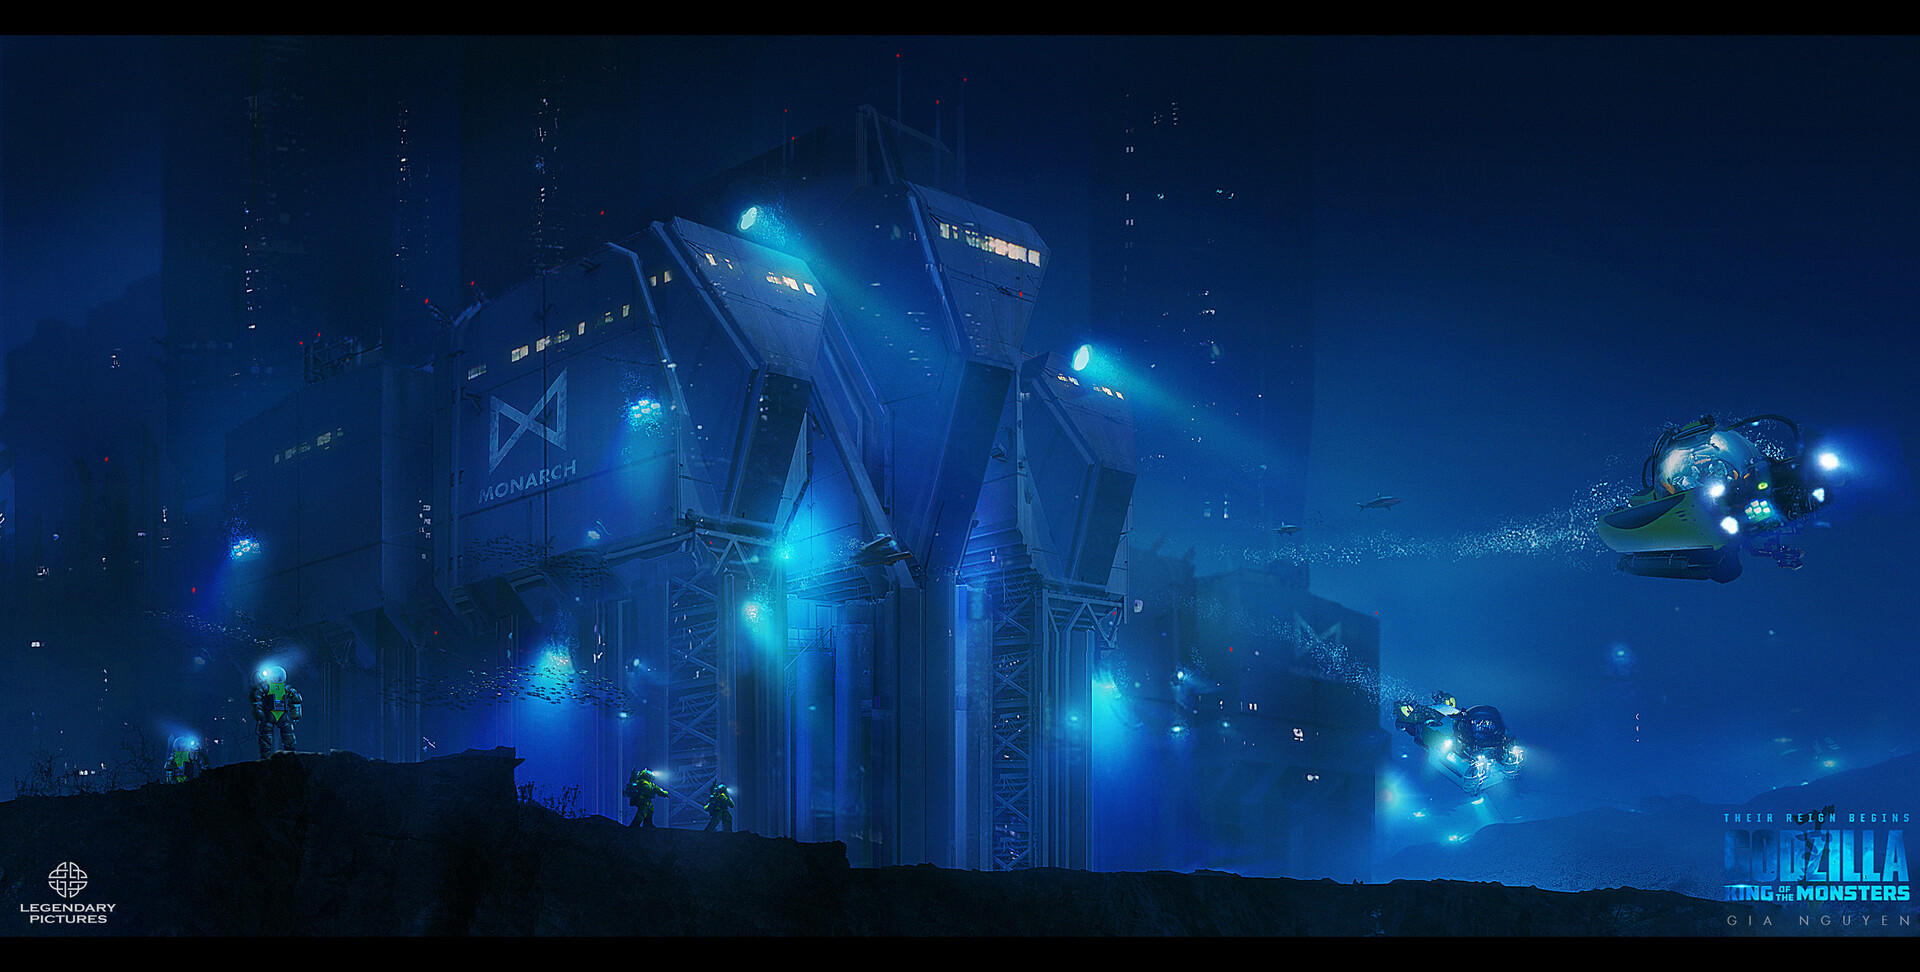 Godzilla 2 Underwater Monarch Facility